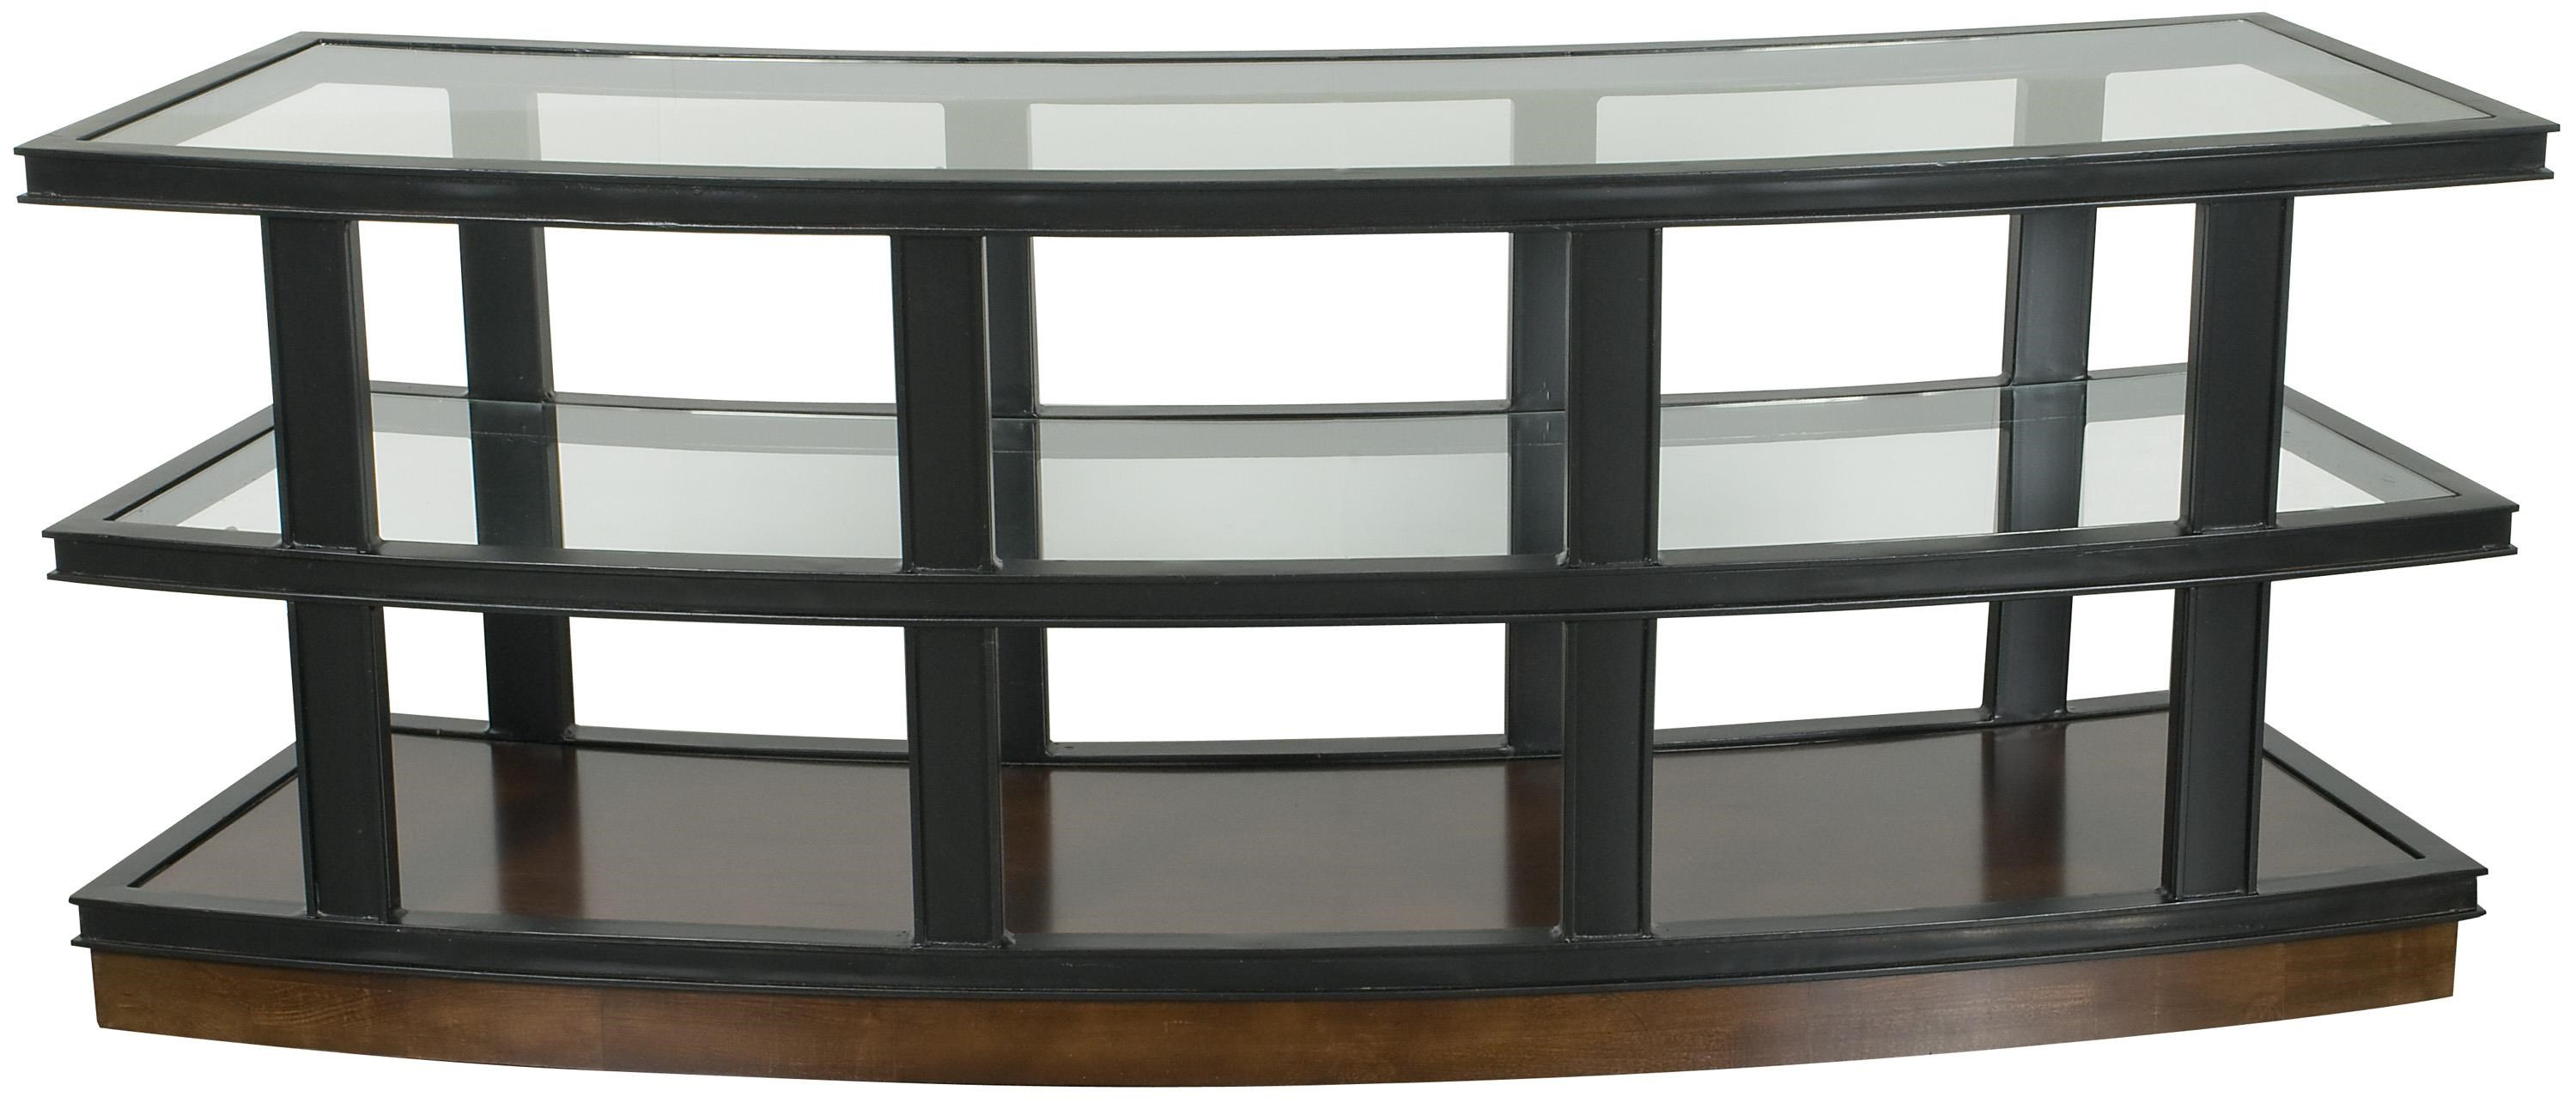 Vanguard Furniture Michael Weiss Fitz Curved Console Table With Glass Top  And Shelves | Belfort Furniture | Sofa Tables/Consoles